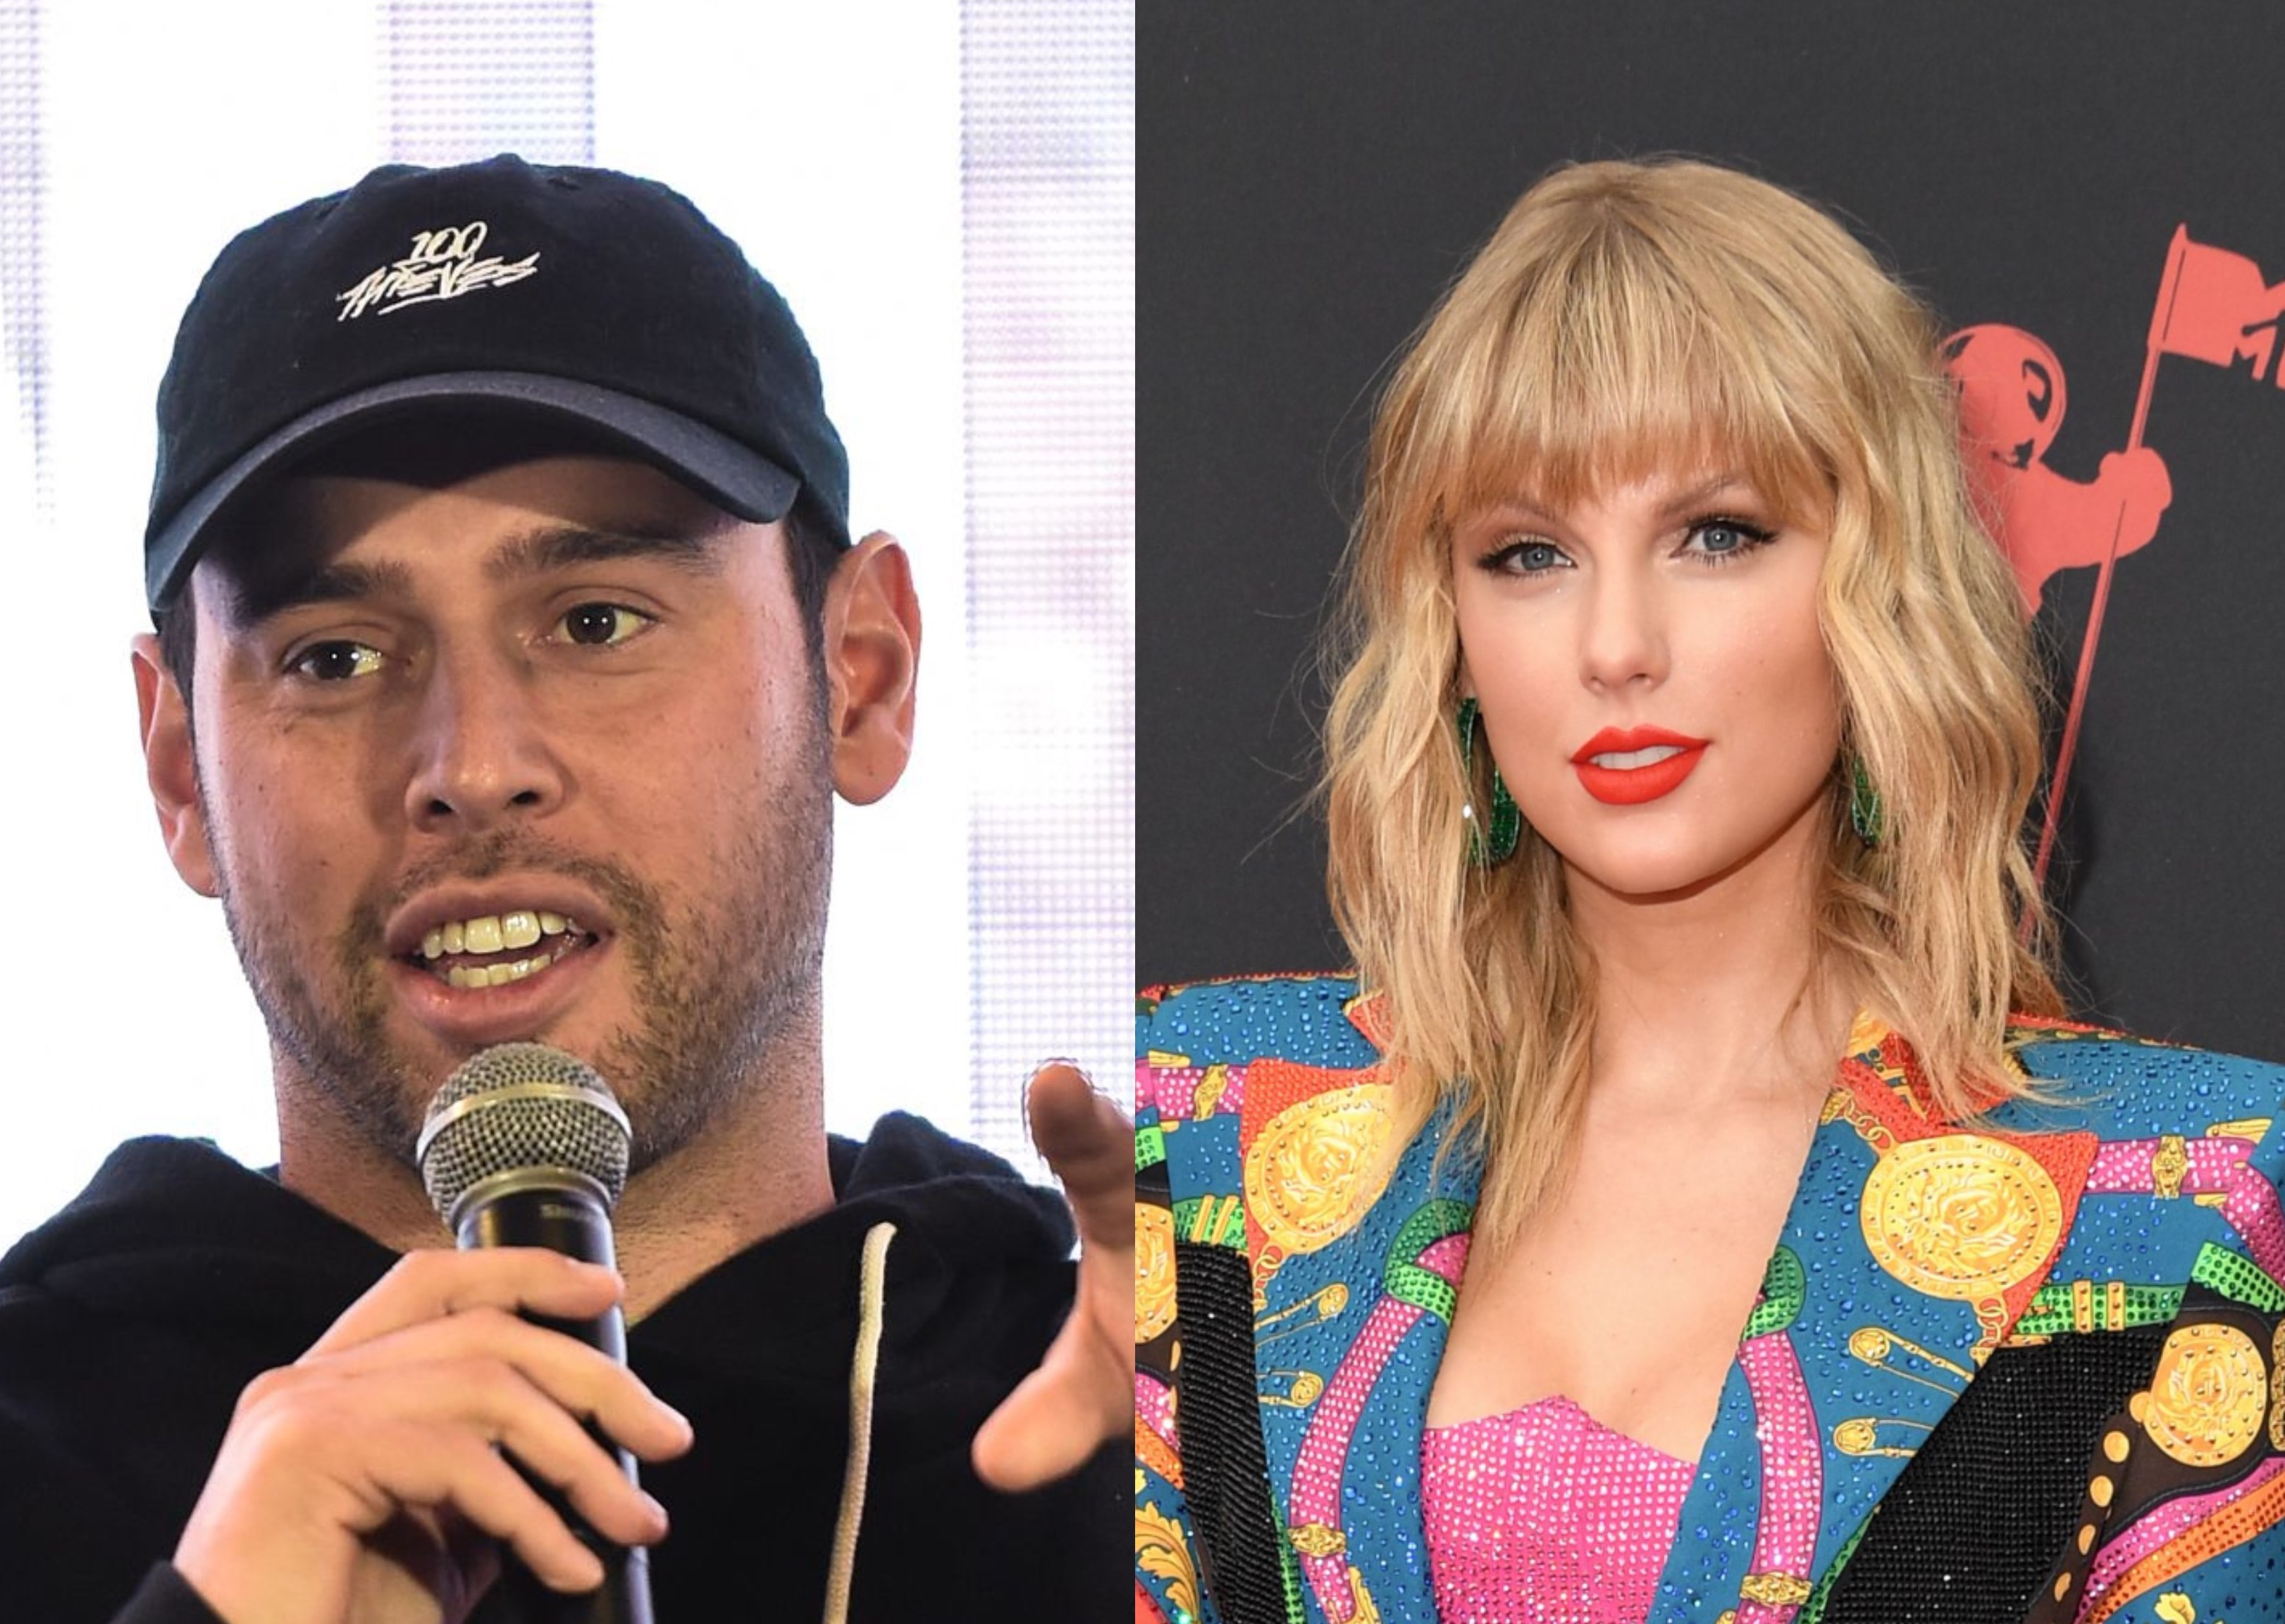 Scooter Braun Addresses Taylor Swift Dispute For For First Time Rolling Stone